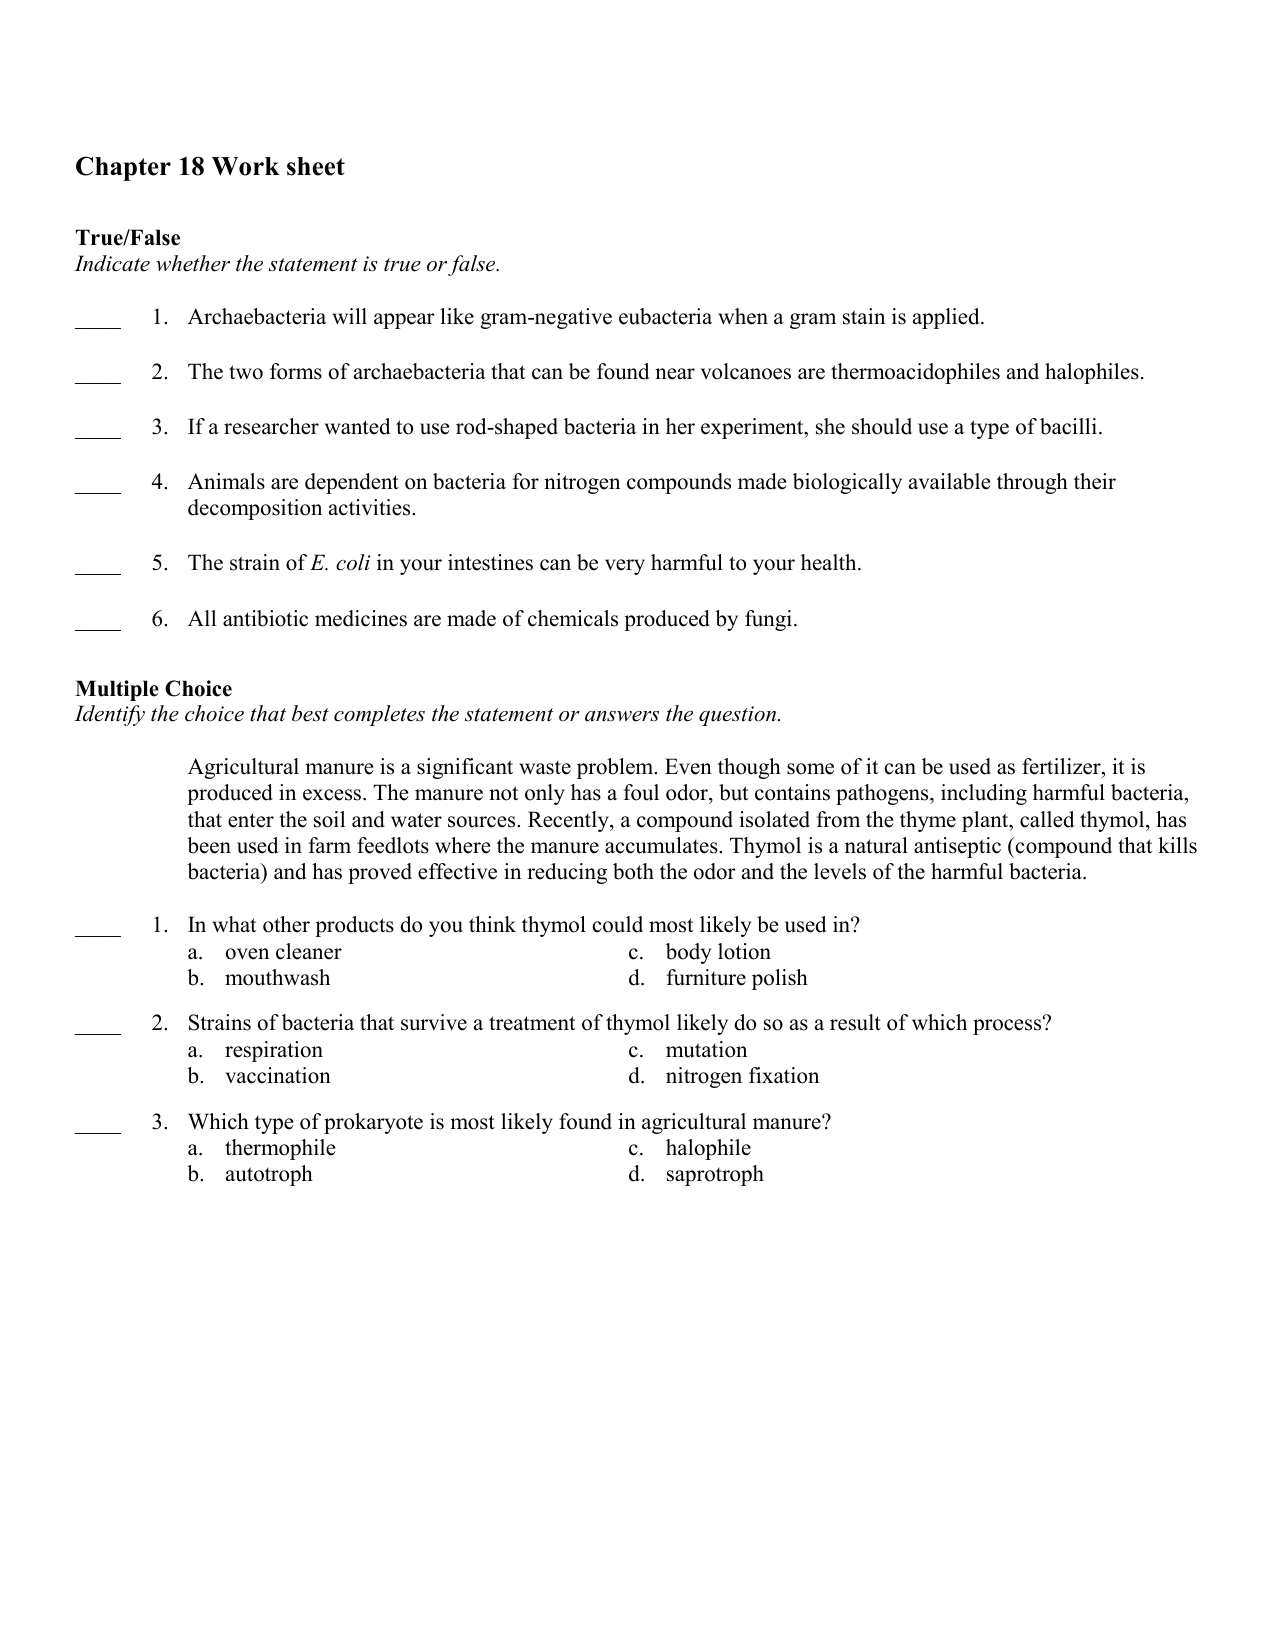 Chapter 18 Viruses And Bacteria Worksheet Answer Key